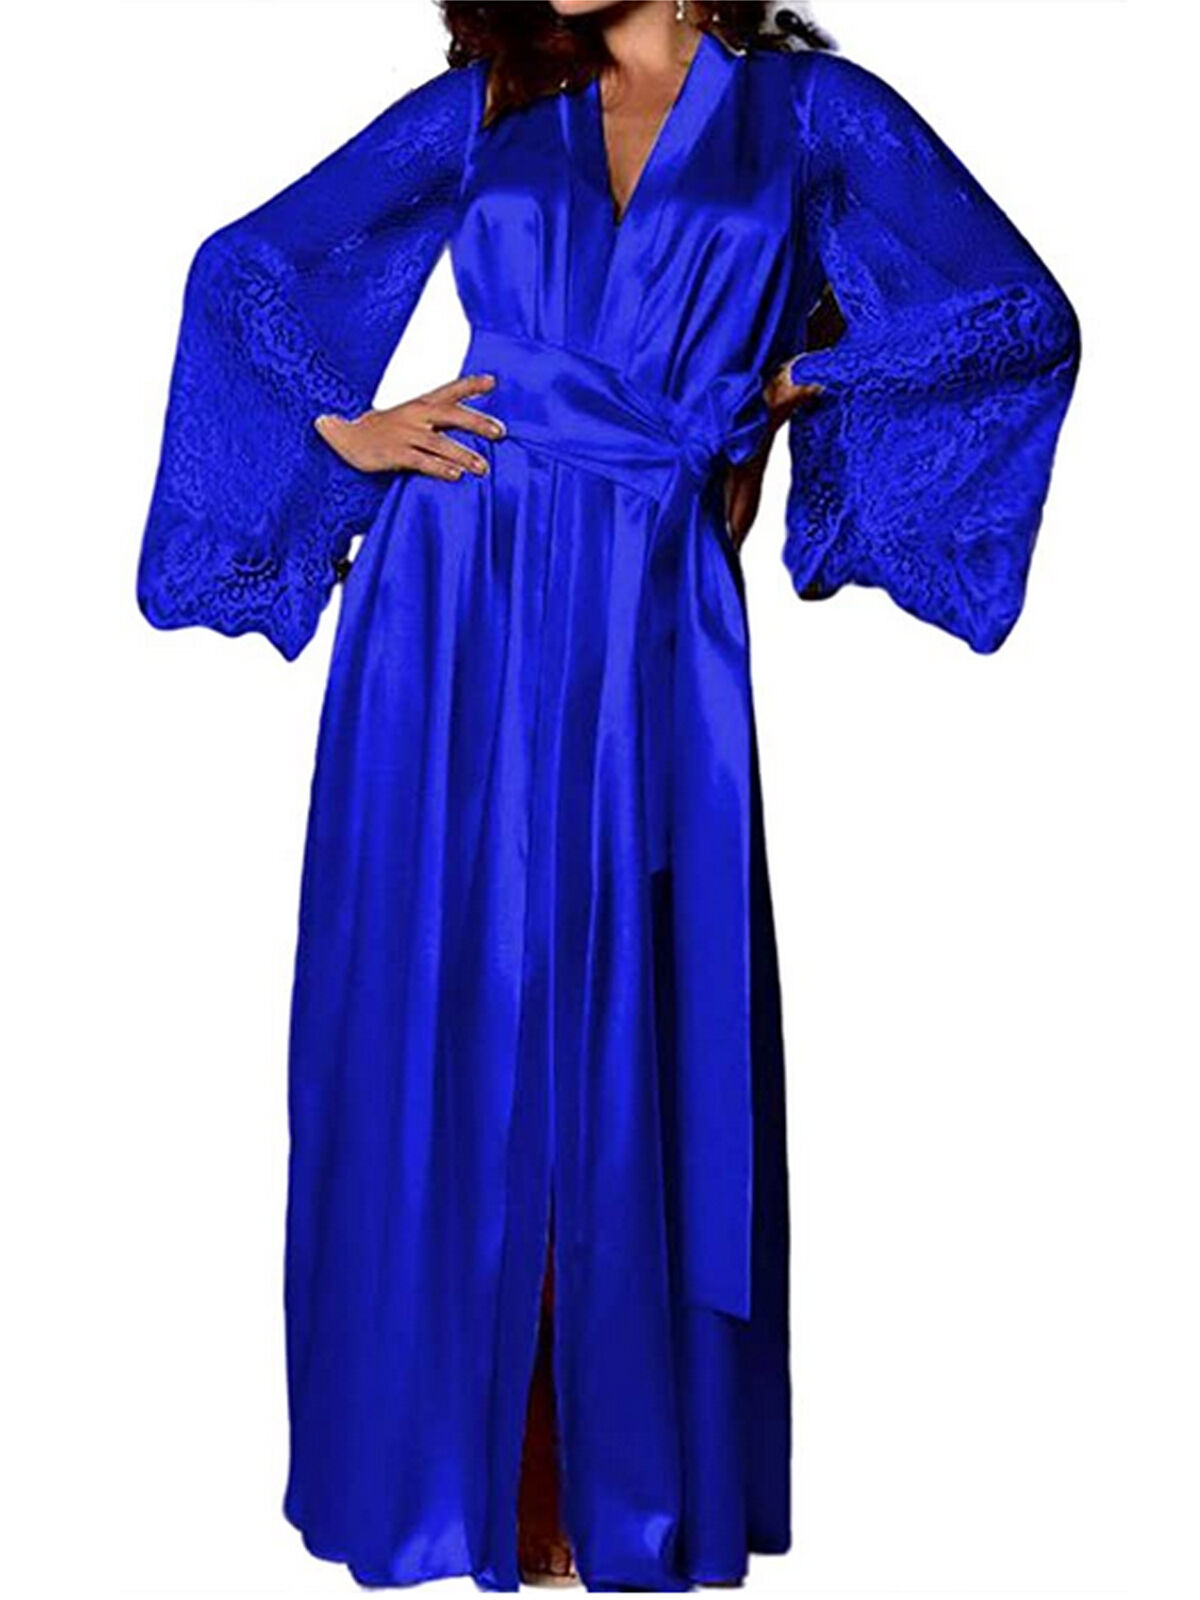 Satin Lace Robes silk maxi robe Satin and Silk Robes Silk kimono Robes,Lace Kimono Robes Wedding Robes Gift for her  Bridesmaid robe